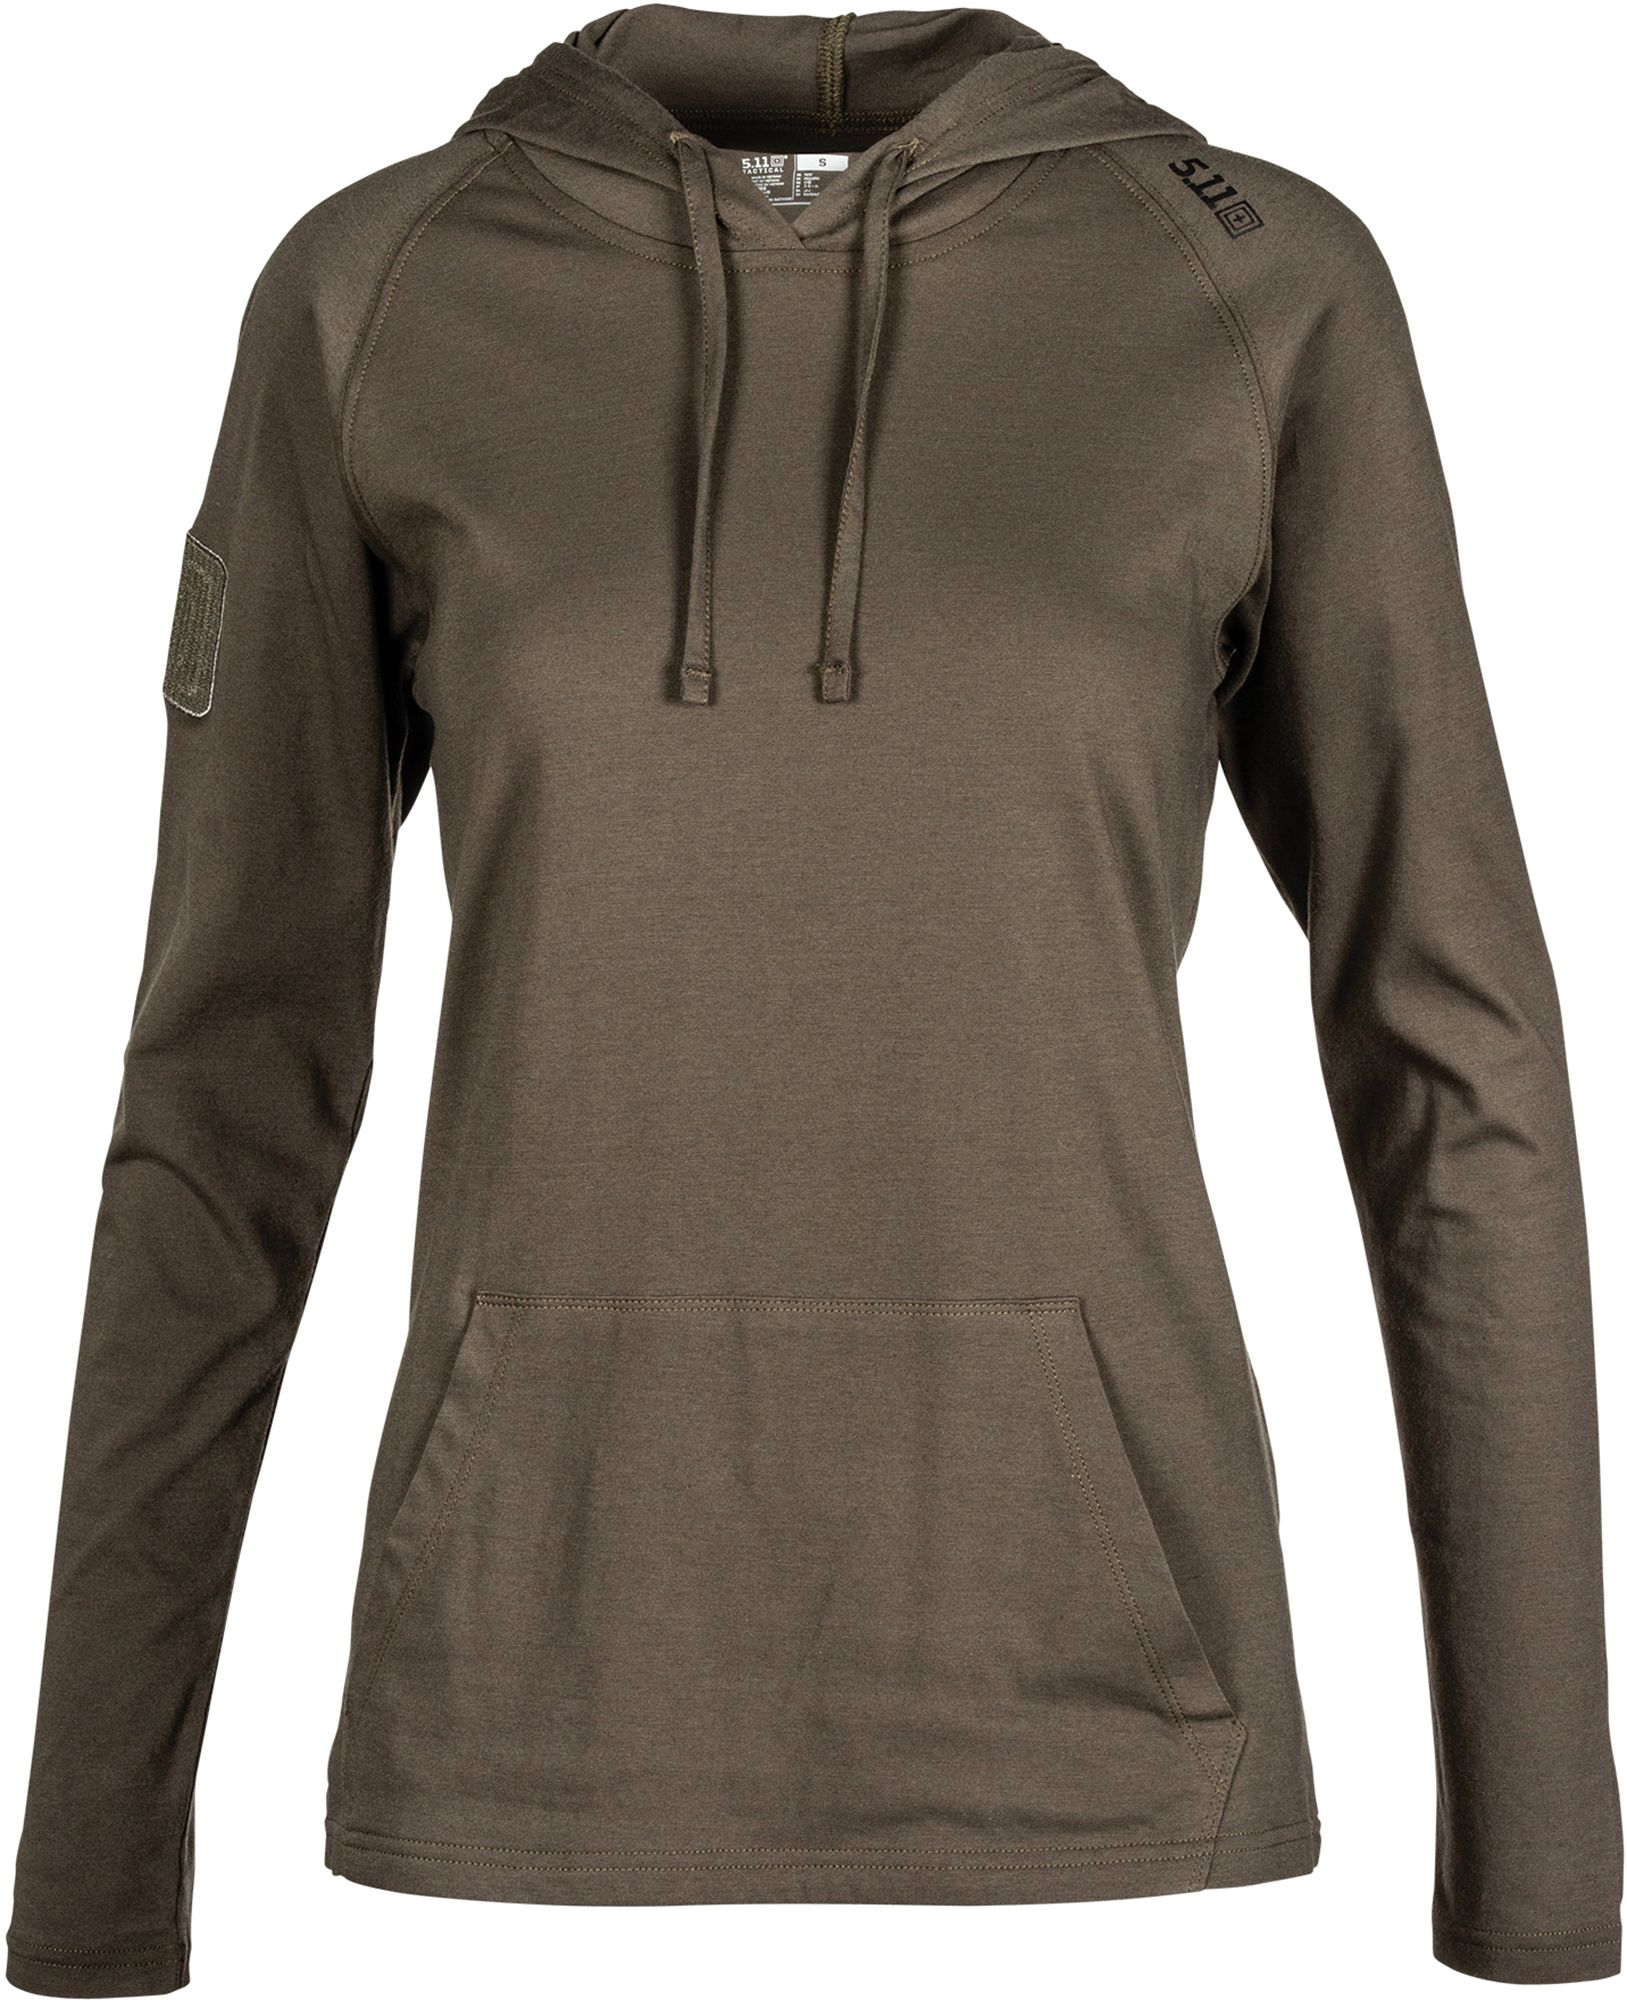 5.11 Tactical Women's Cruiser Performance Hoodie, Size: Medium, Gray thumbnail